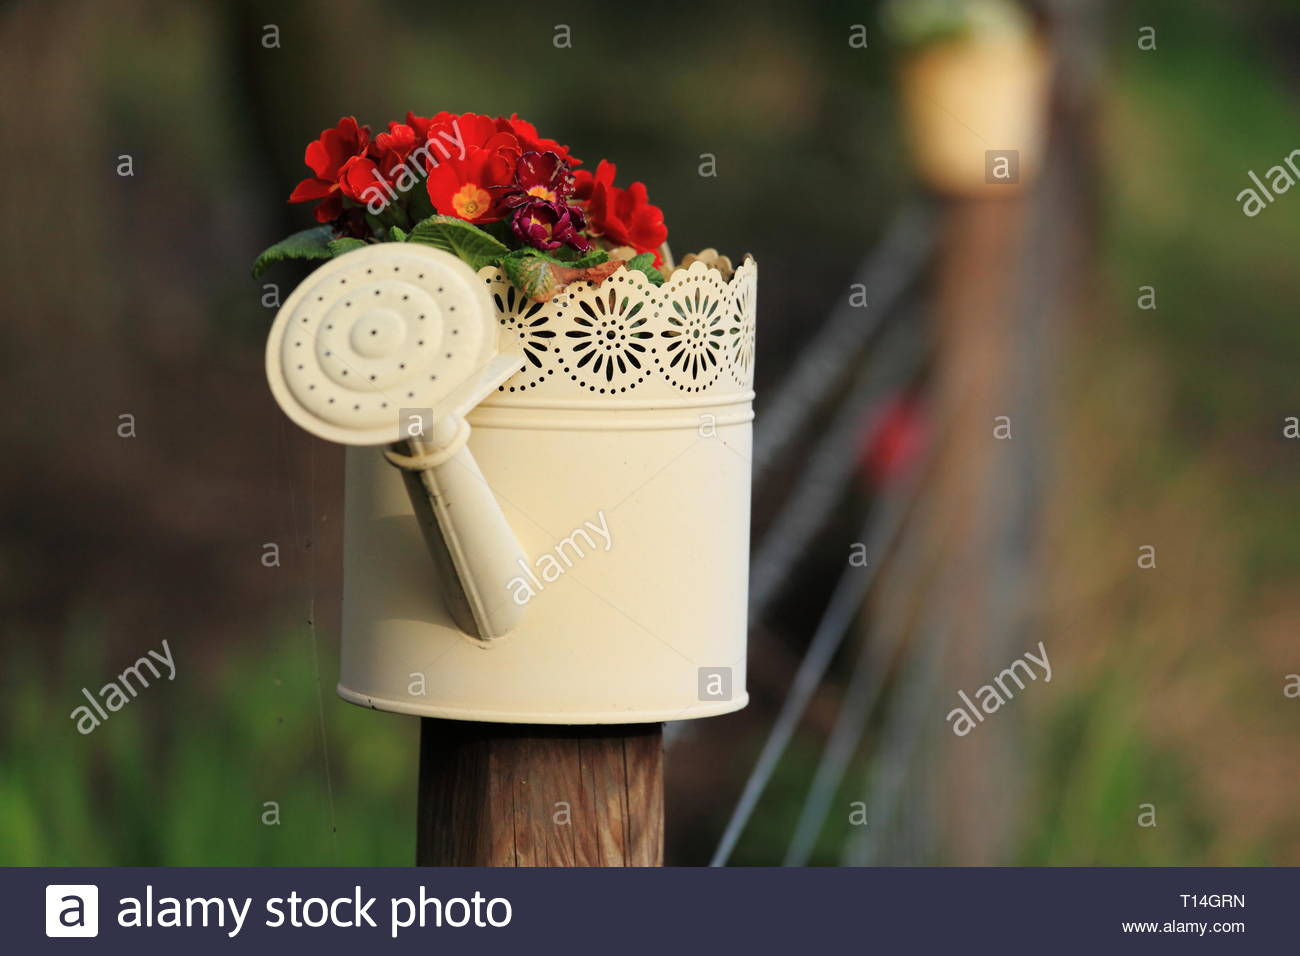 Beautiful red flowers in a small decorative watering can used as a planter on a fence post - Stock Image